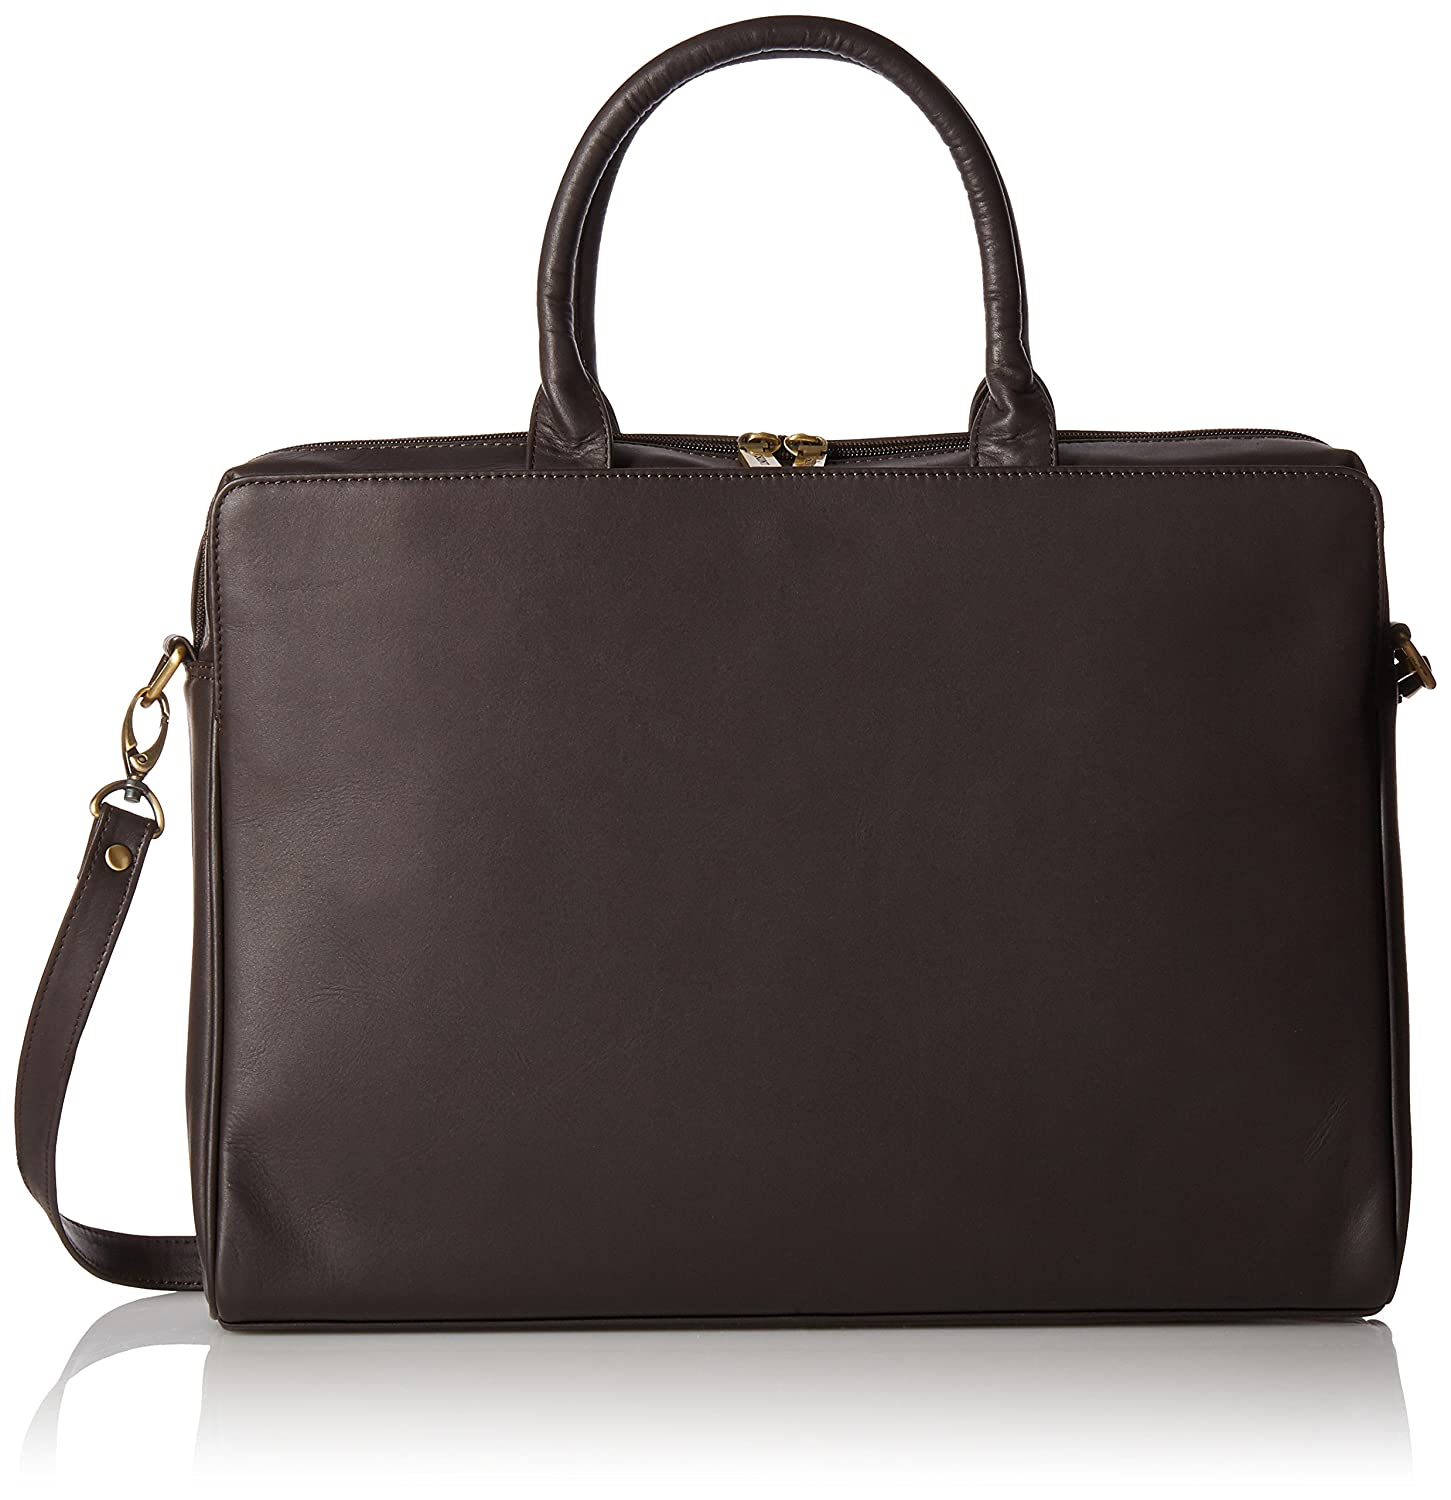 Visconti Ladies Leather Top Handle Black Handbag Briefcase Laptop Case, Black, One Size Visconti Luggage 18427